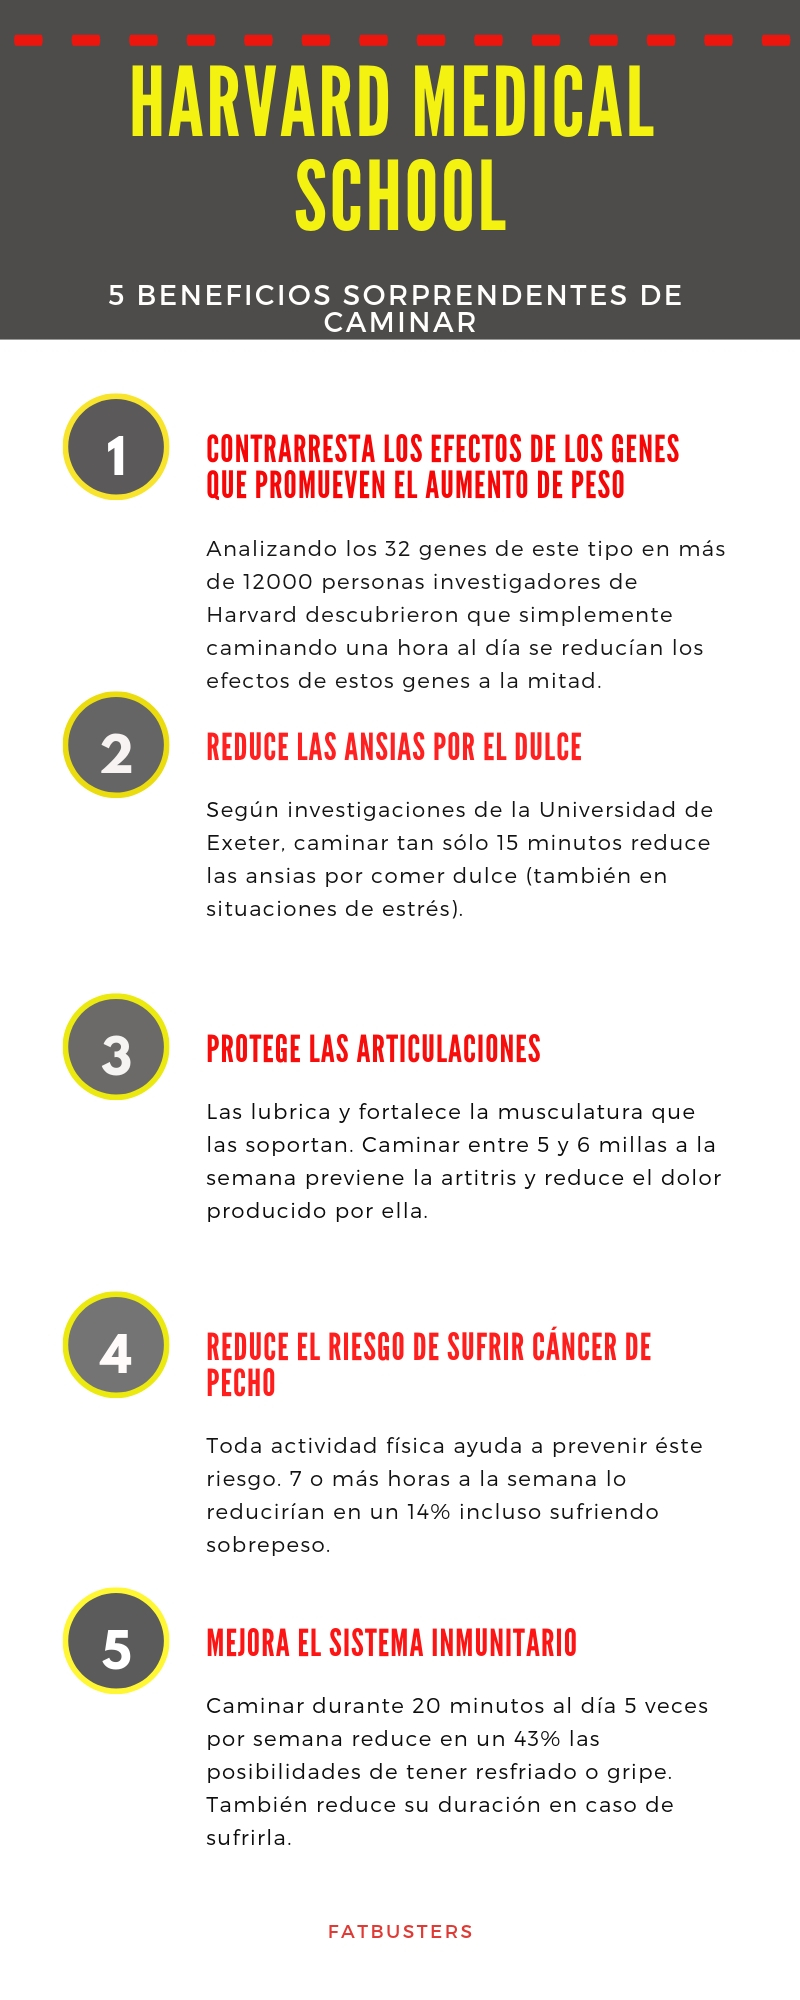 Infografía Harvard Medical School Fatbusters